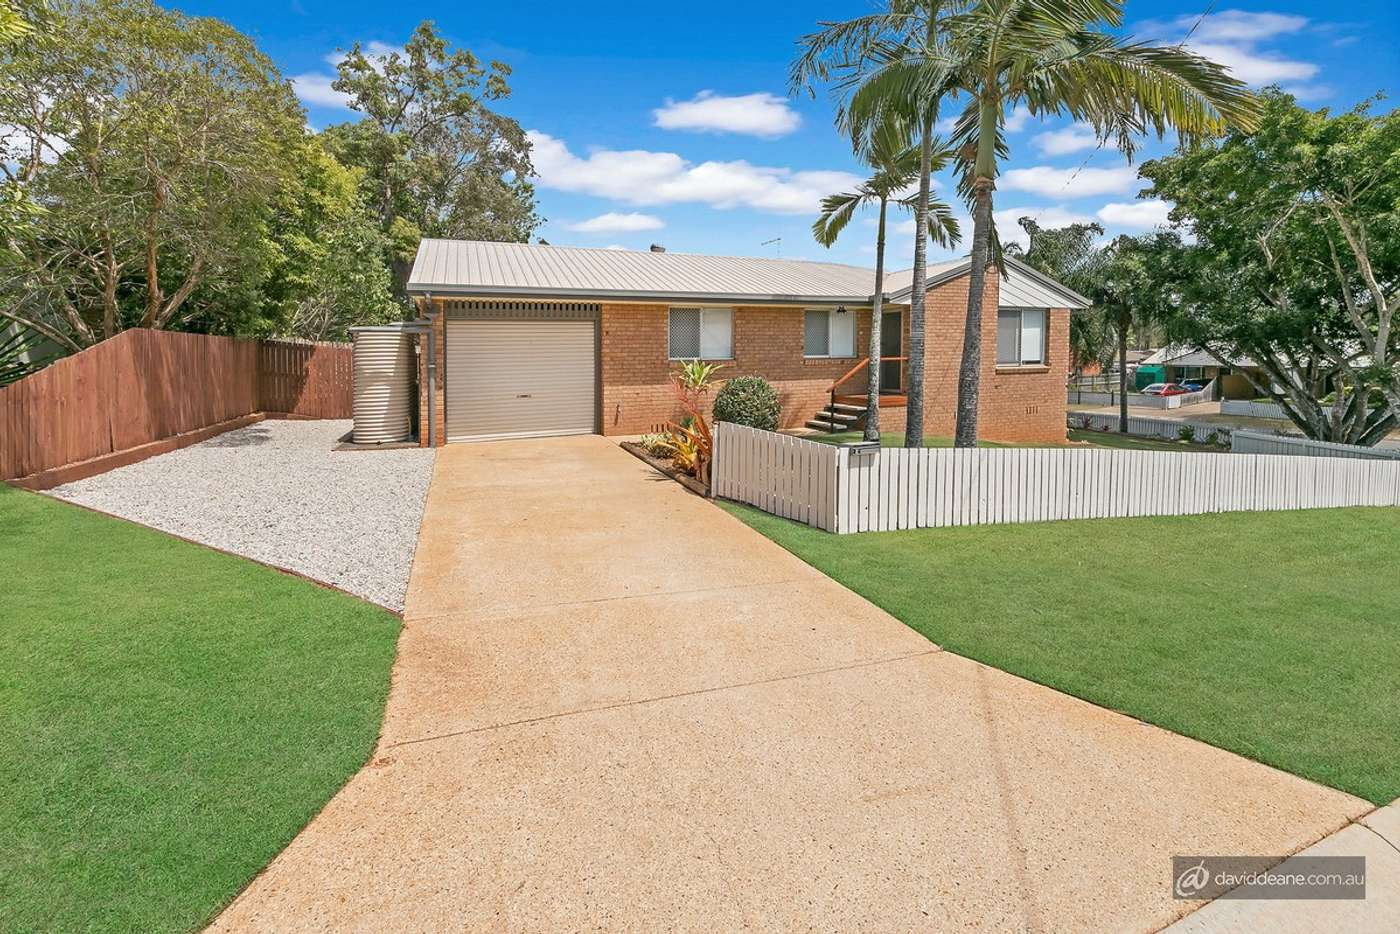 Main view of Homely house listing, 2 Grigg Court, Lawnton QLD 4501